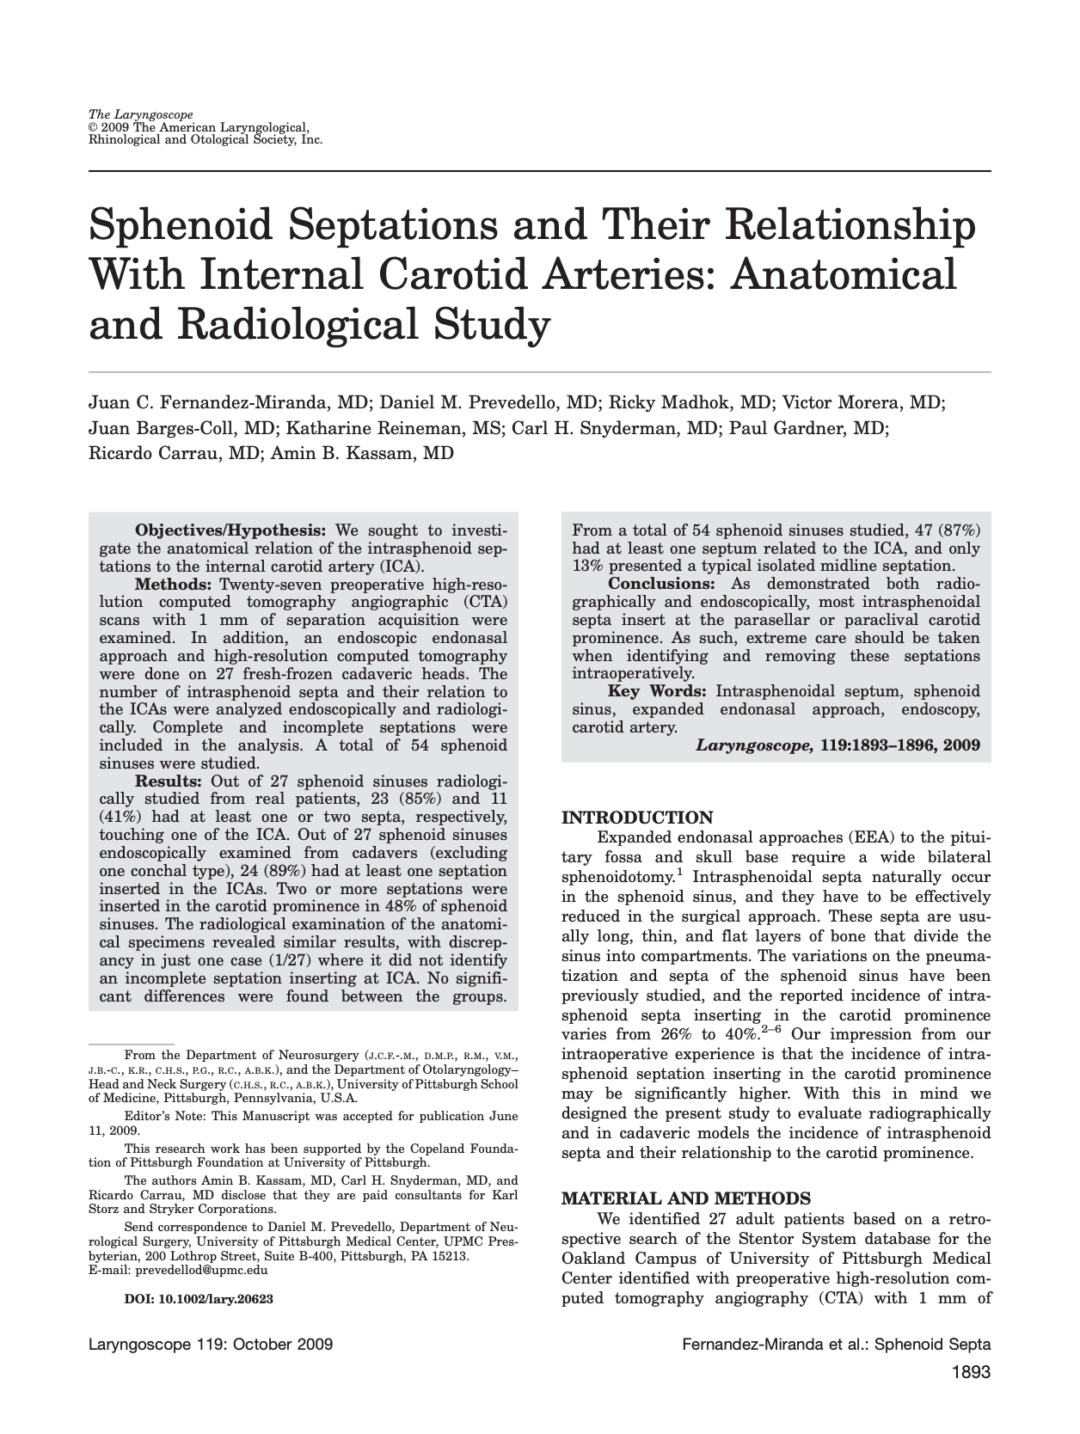 Sphenoid Septations and Their Relationship With Internal Carotid Arteries: Anatomical and Radiological Study